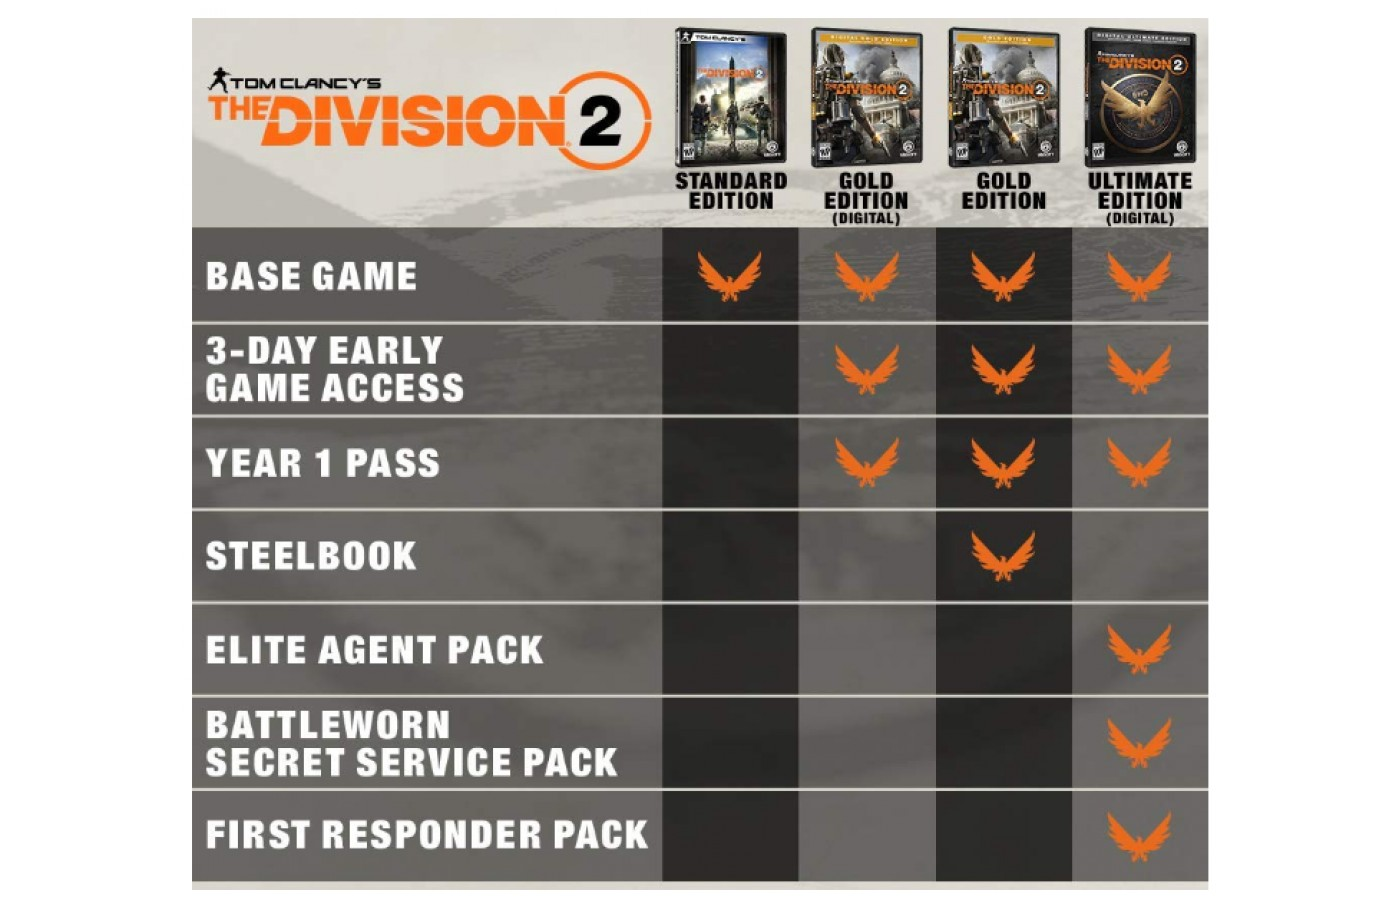 Depending on the version you choose to get of the game you get extra features.